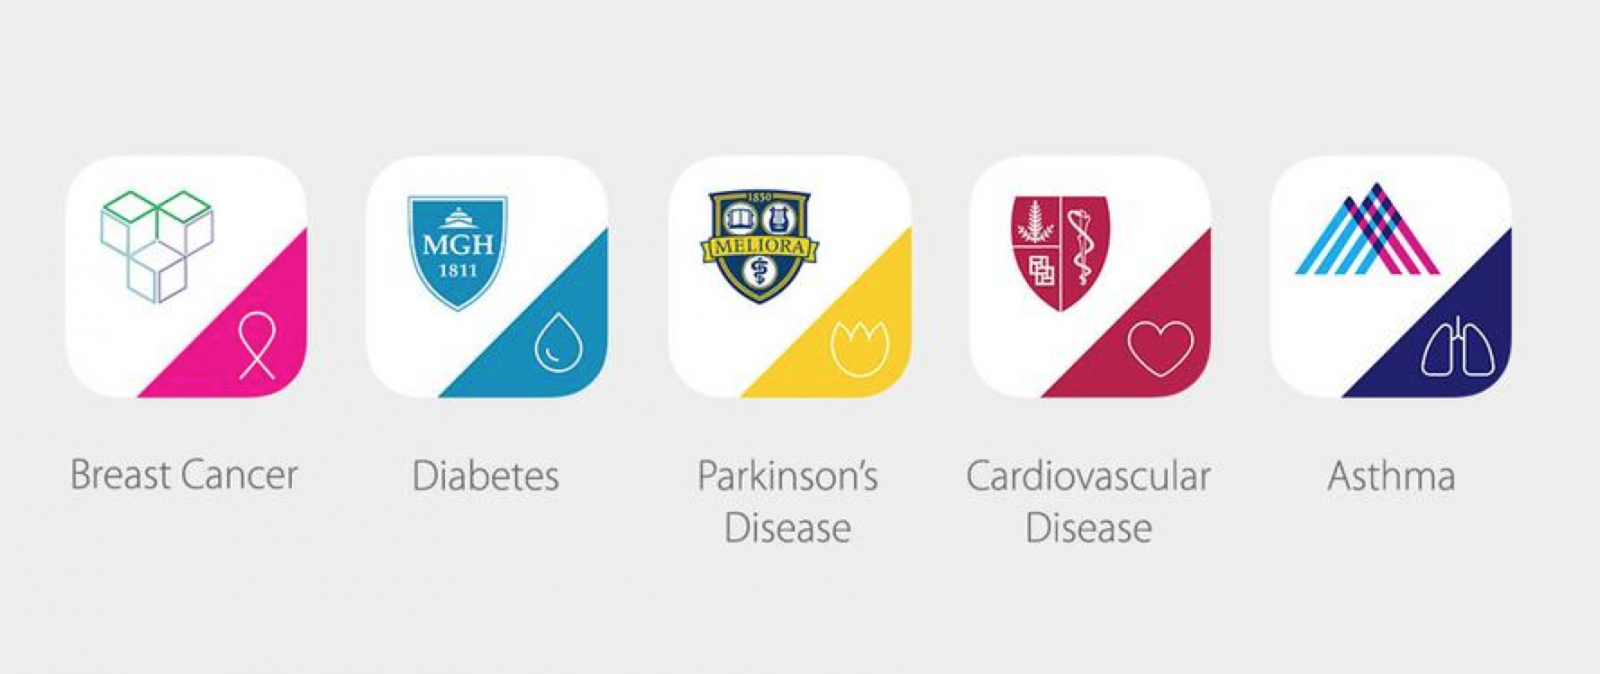 ResearchKit apps